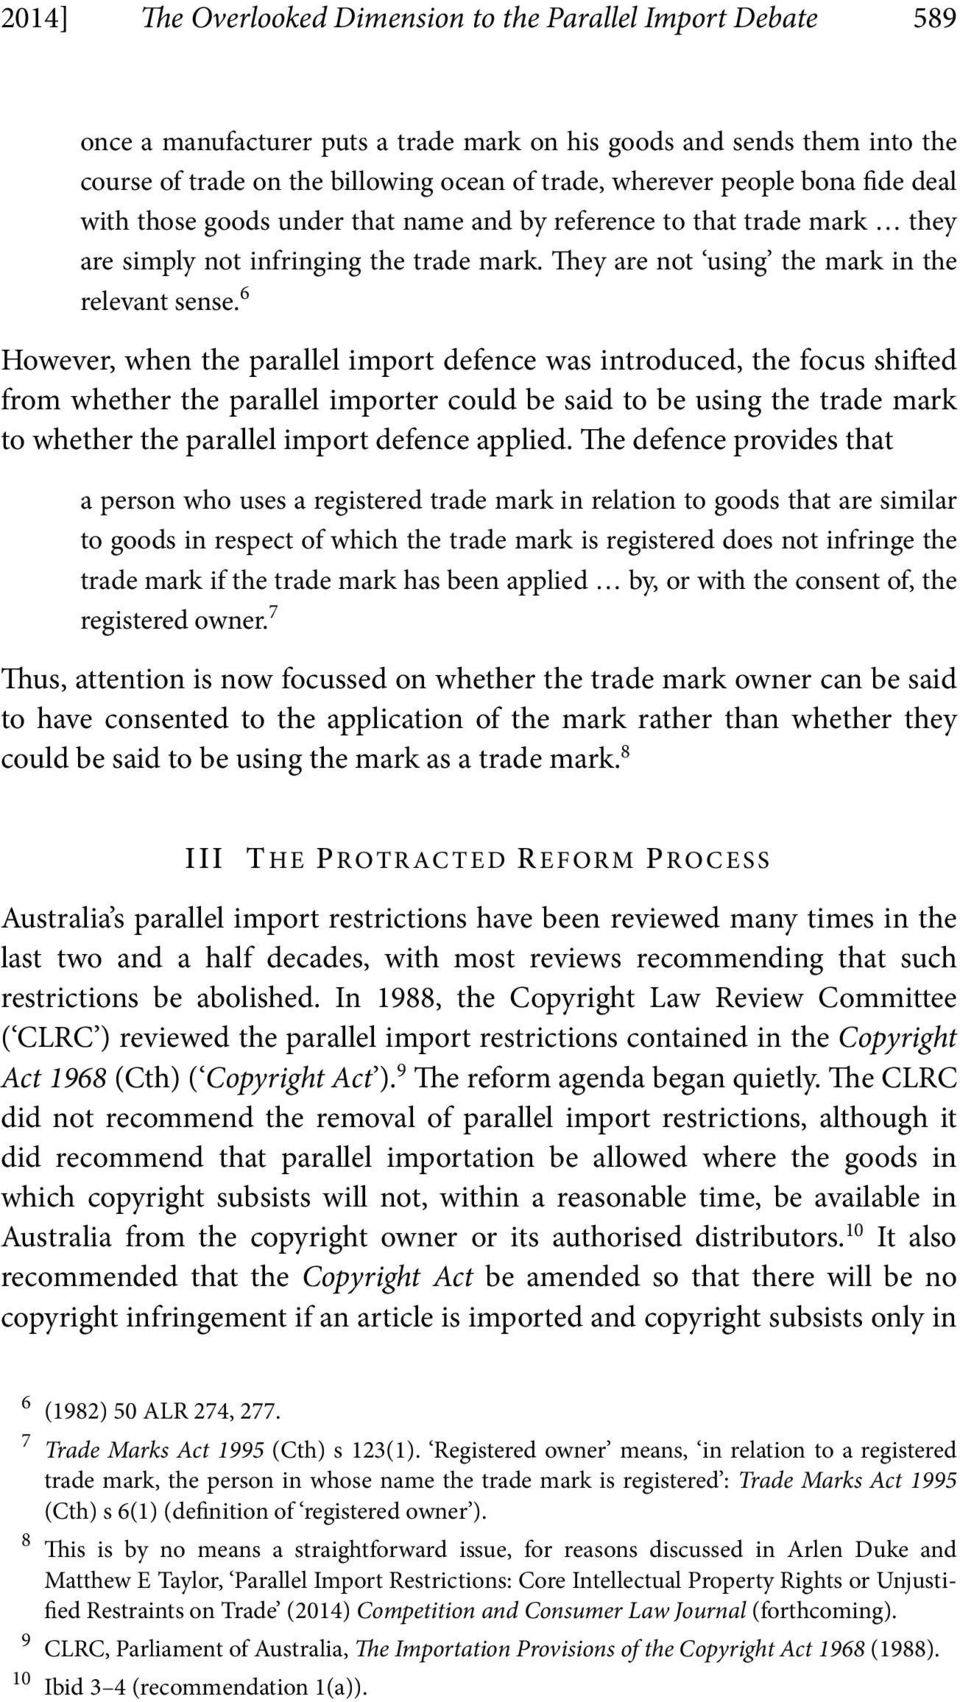 6 However, when the parallel import defence was introduced, the focus shifted from whether the parallel importer could be said to be using the trade mark to whether the parallel import defence